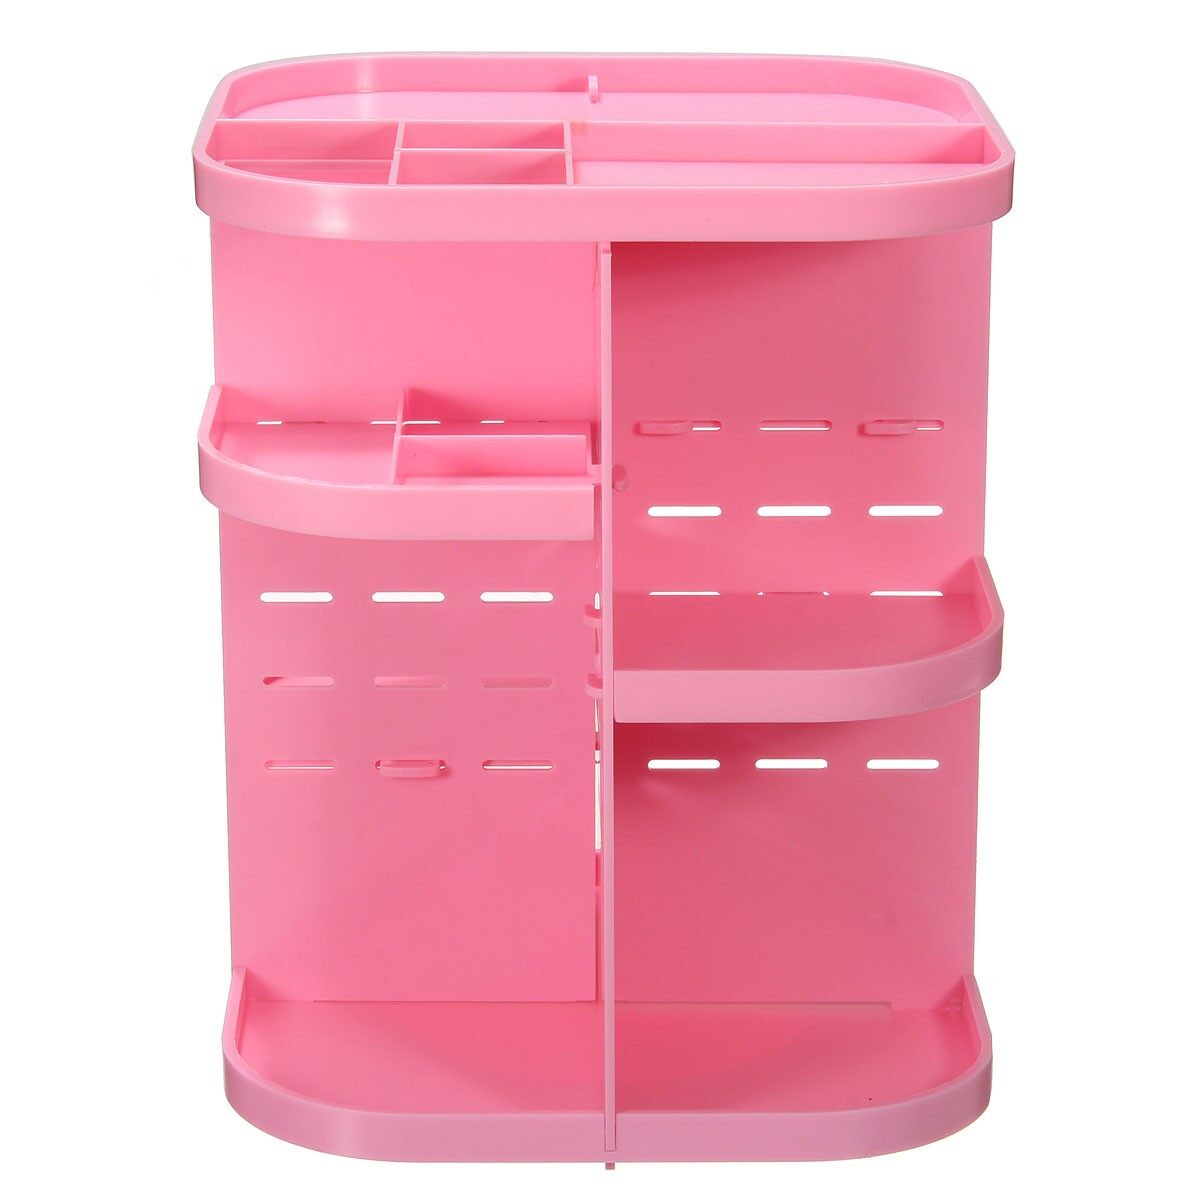 Promo Pink 360° Rotating Makeup Organizer Case Drawers Cosmetic Jewelry Storage Cabinet Box Export Intl